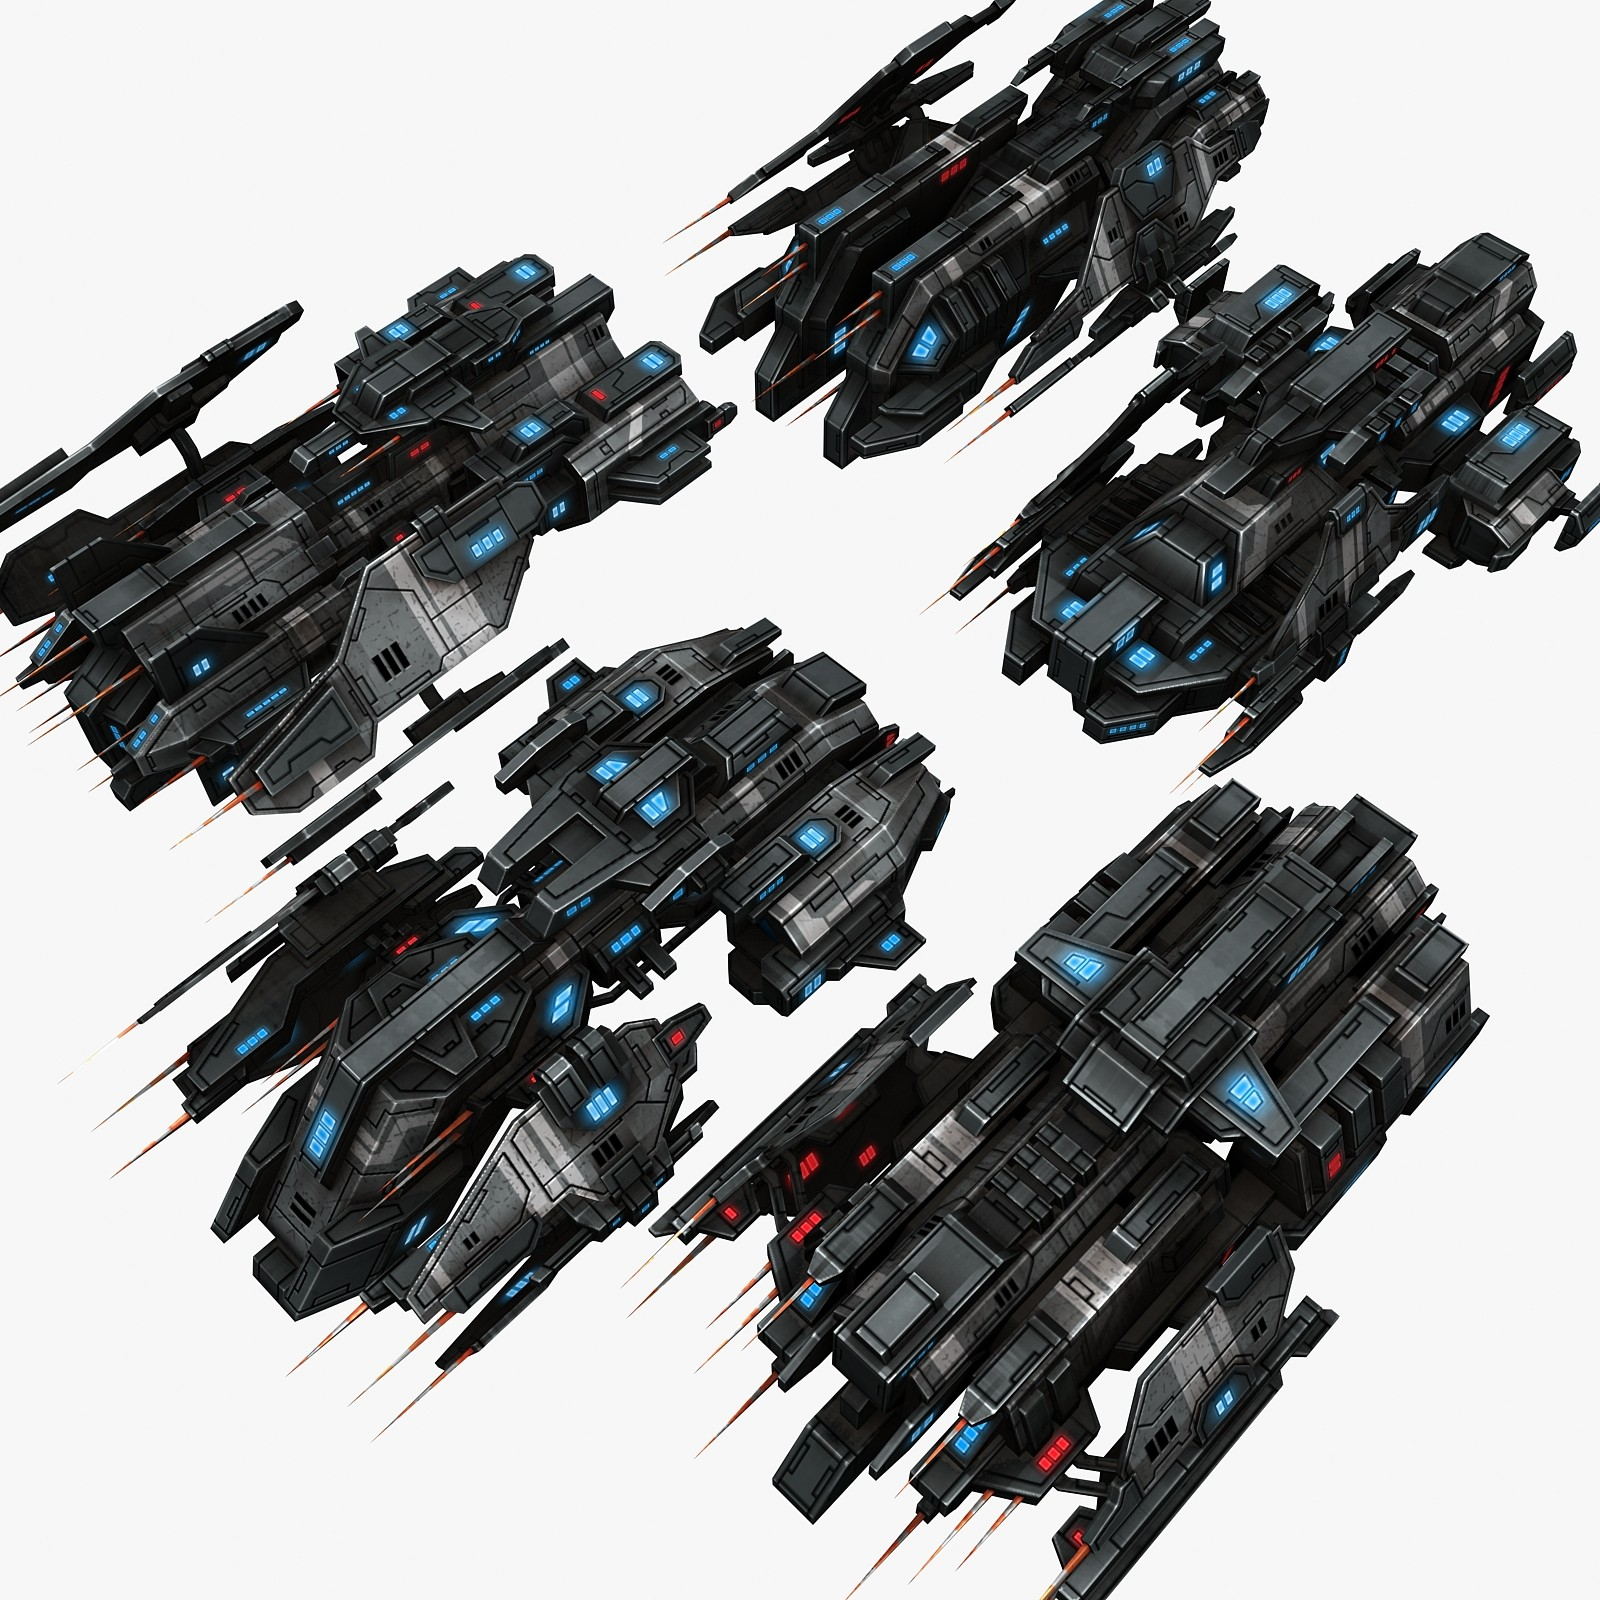 5_battleship_fighters_preview_1.jpg